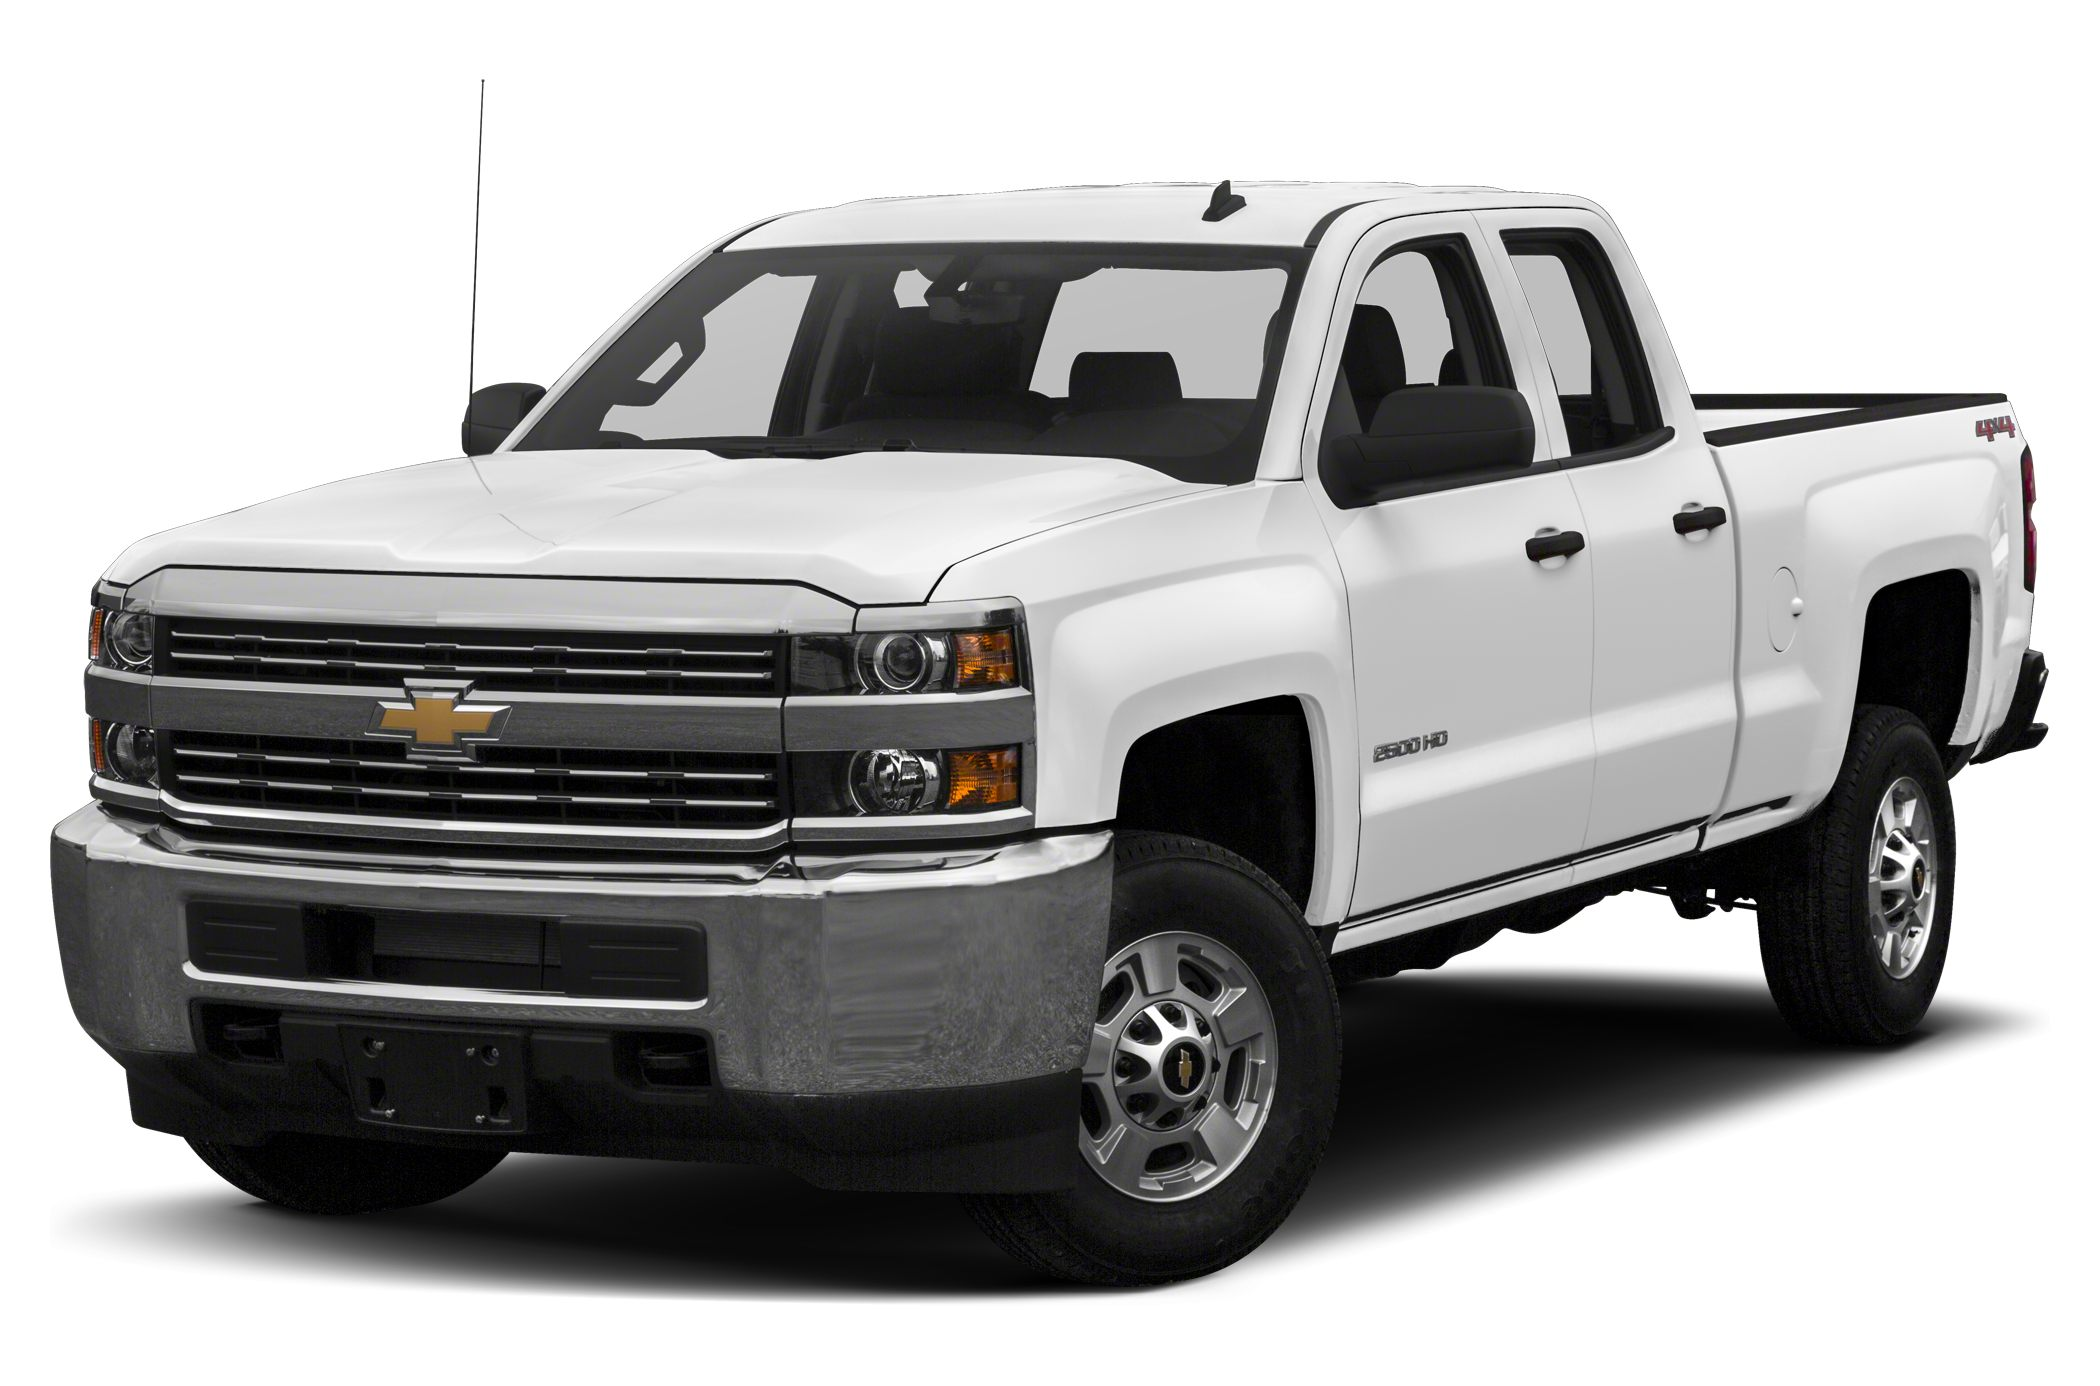 2015 Chevrolet Silverado 2500 LTZ Crew Cab Pickup for sale in Morgantown for $60,865 with 0 miles.